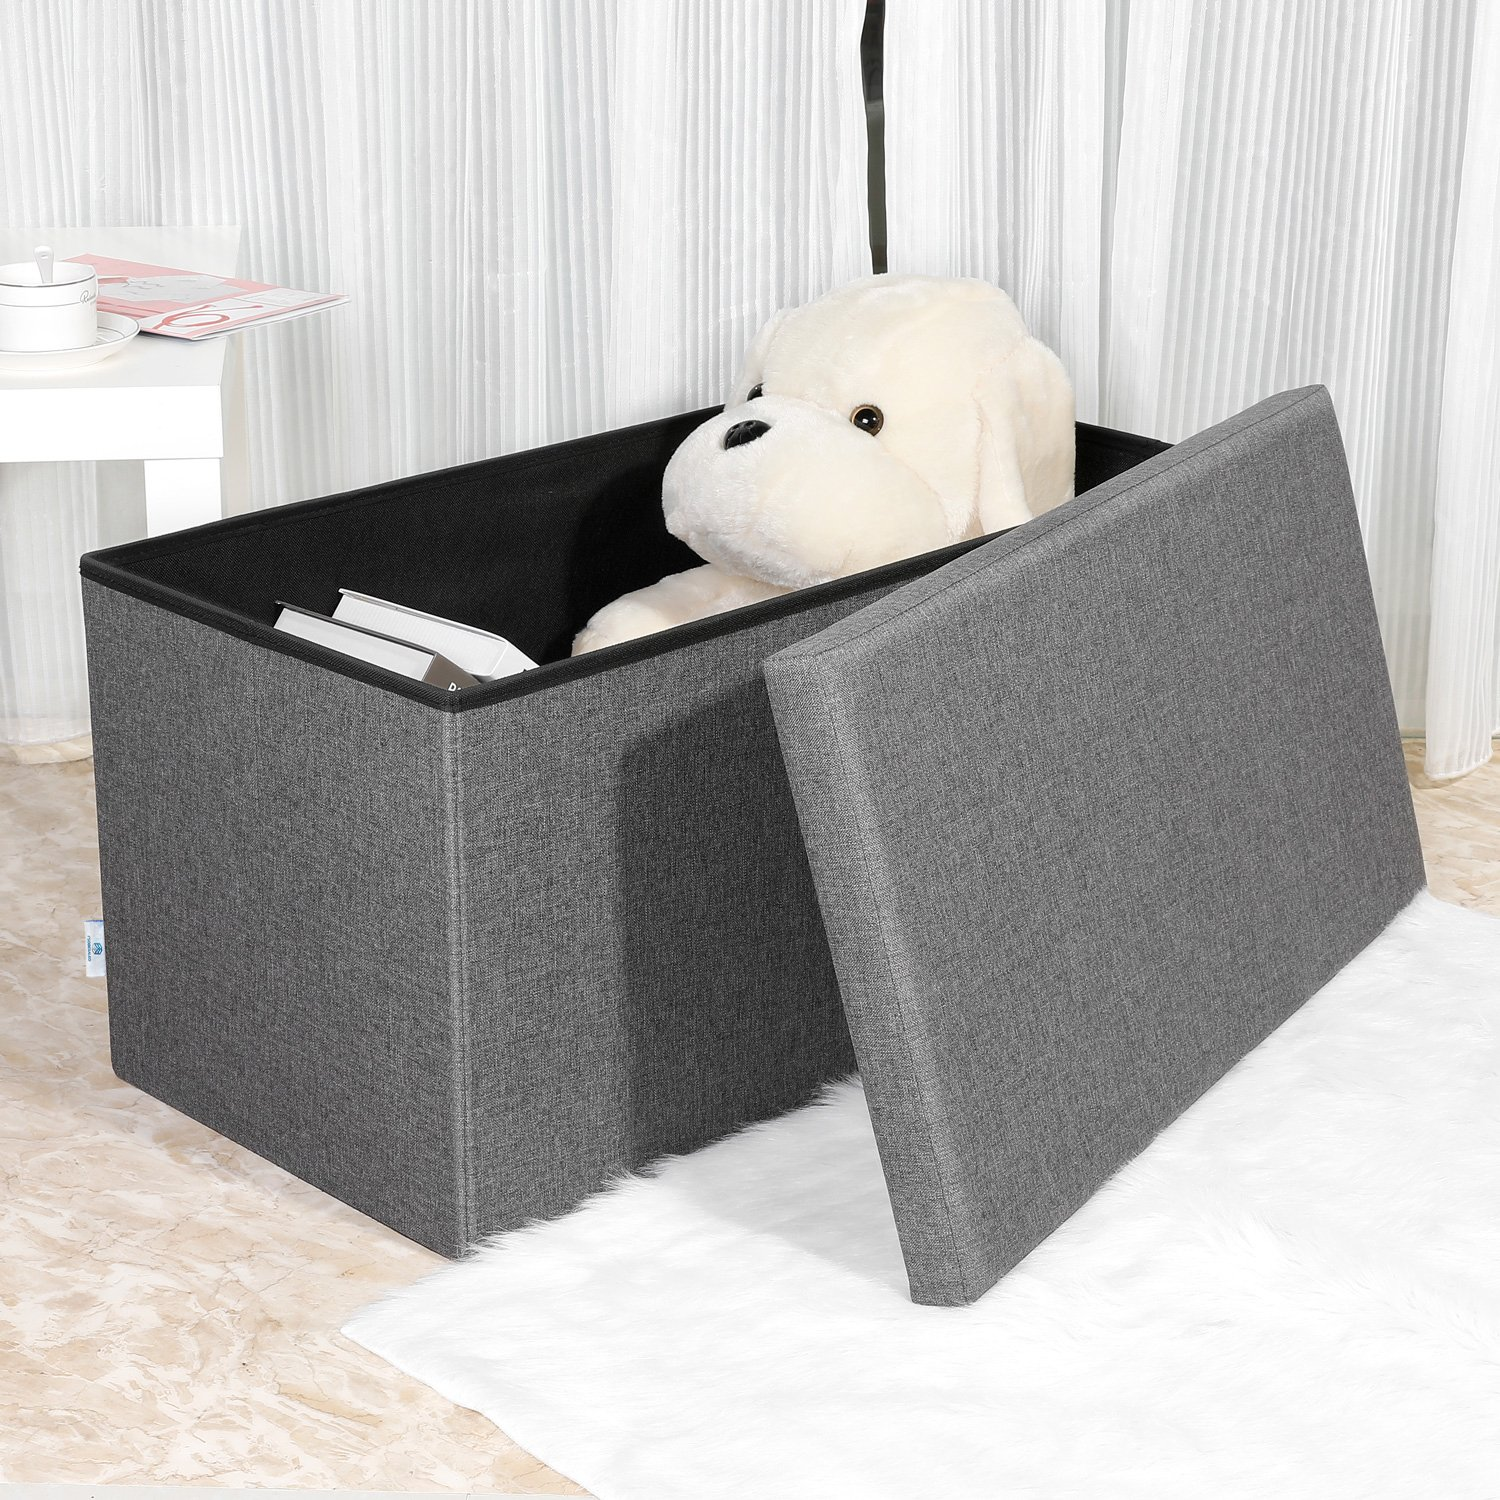 Footstool Coffee Table Tray: B FSOBEIIALEO Storage Ottoman With Tray, Linen Coffee